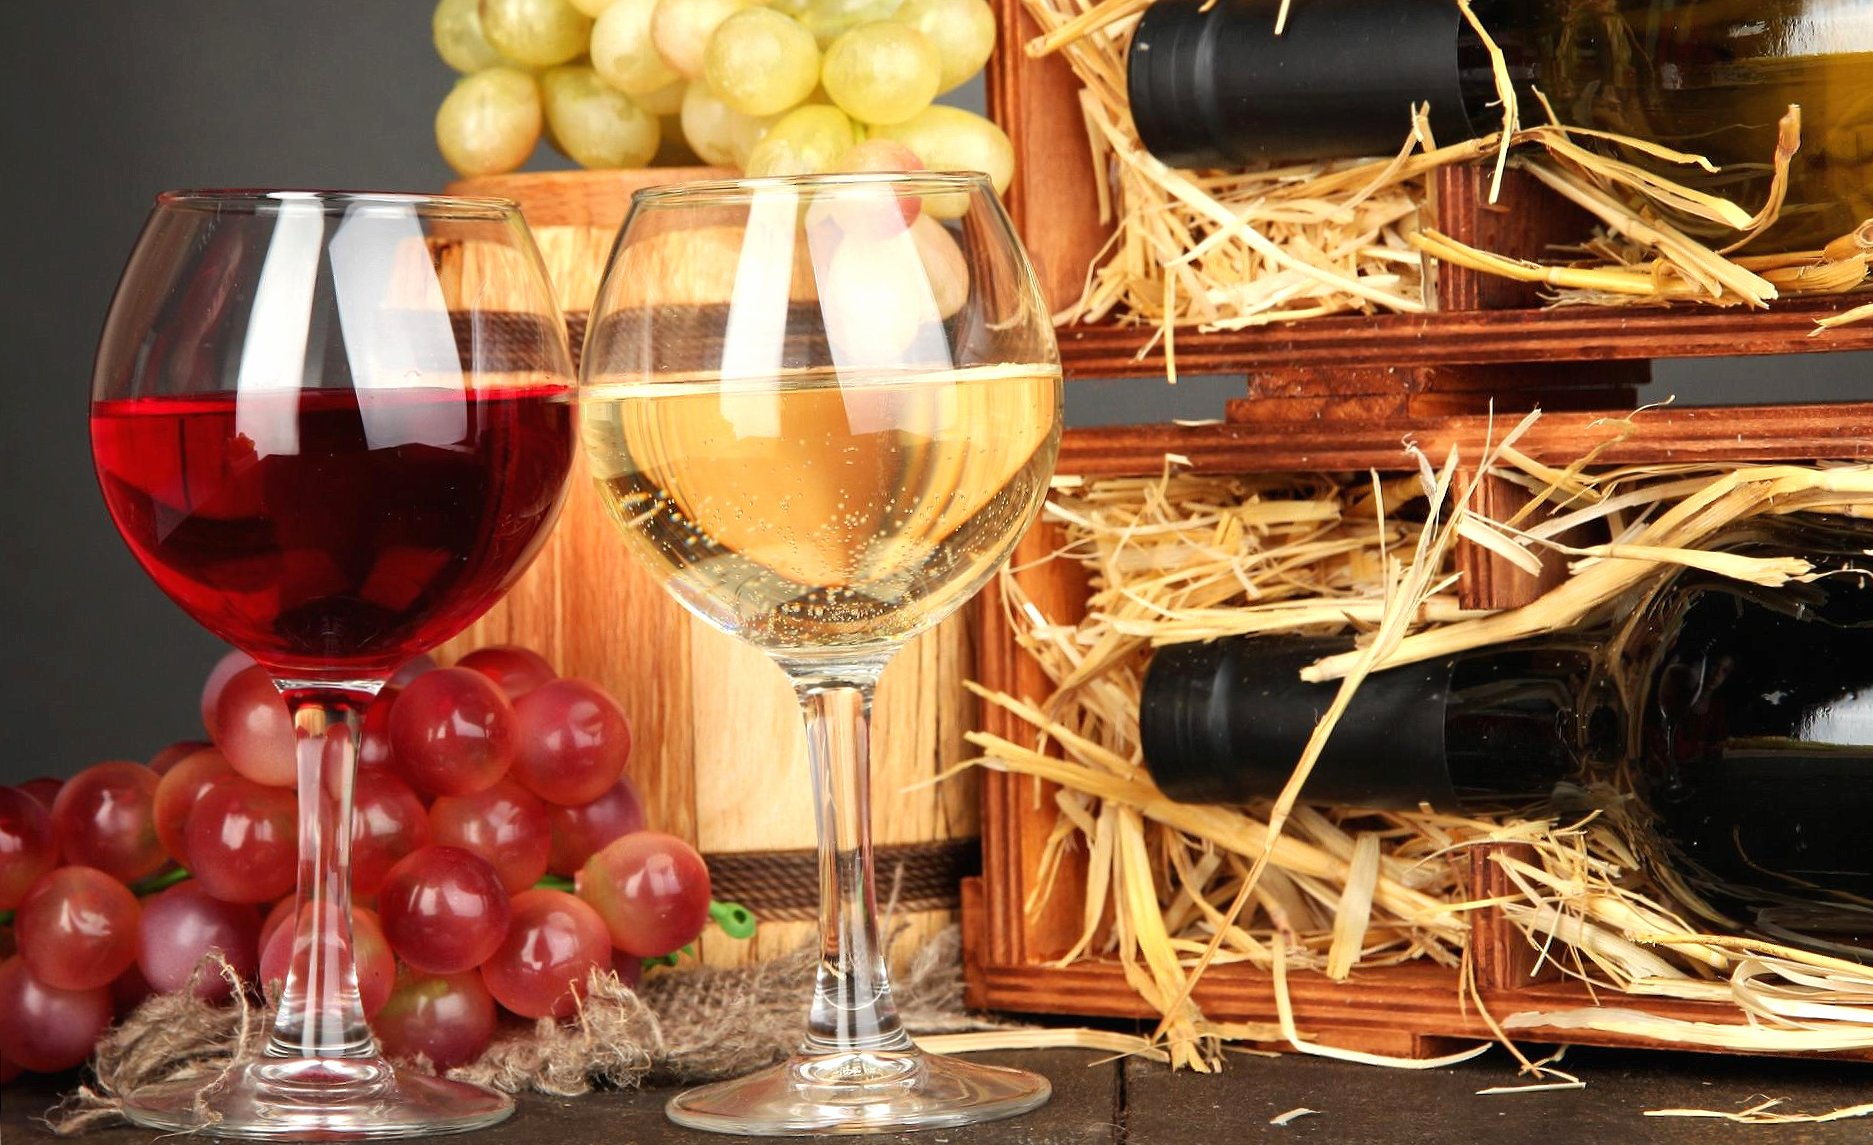 Red and white glasses of wine wallpapers HD quality